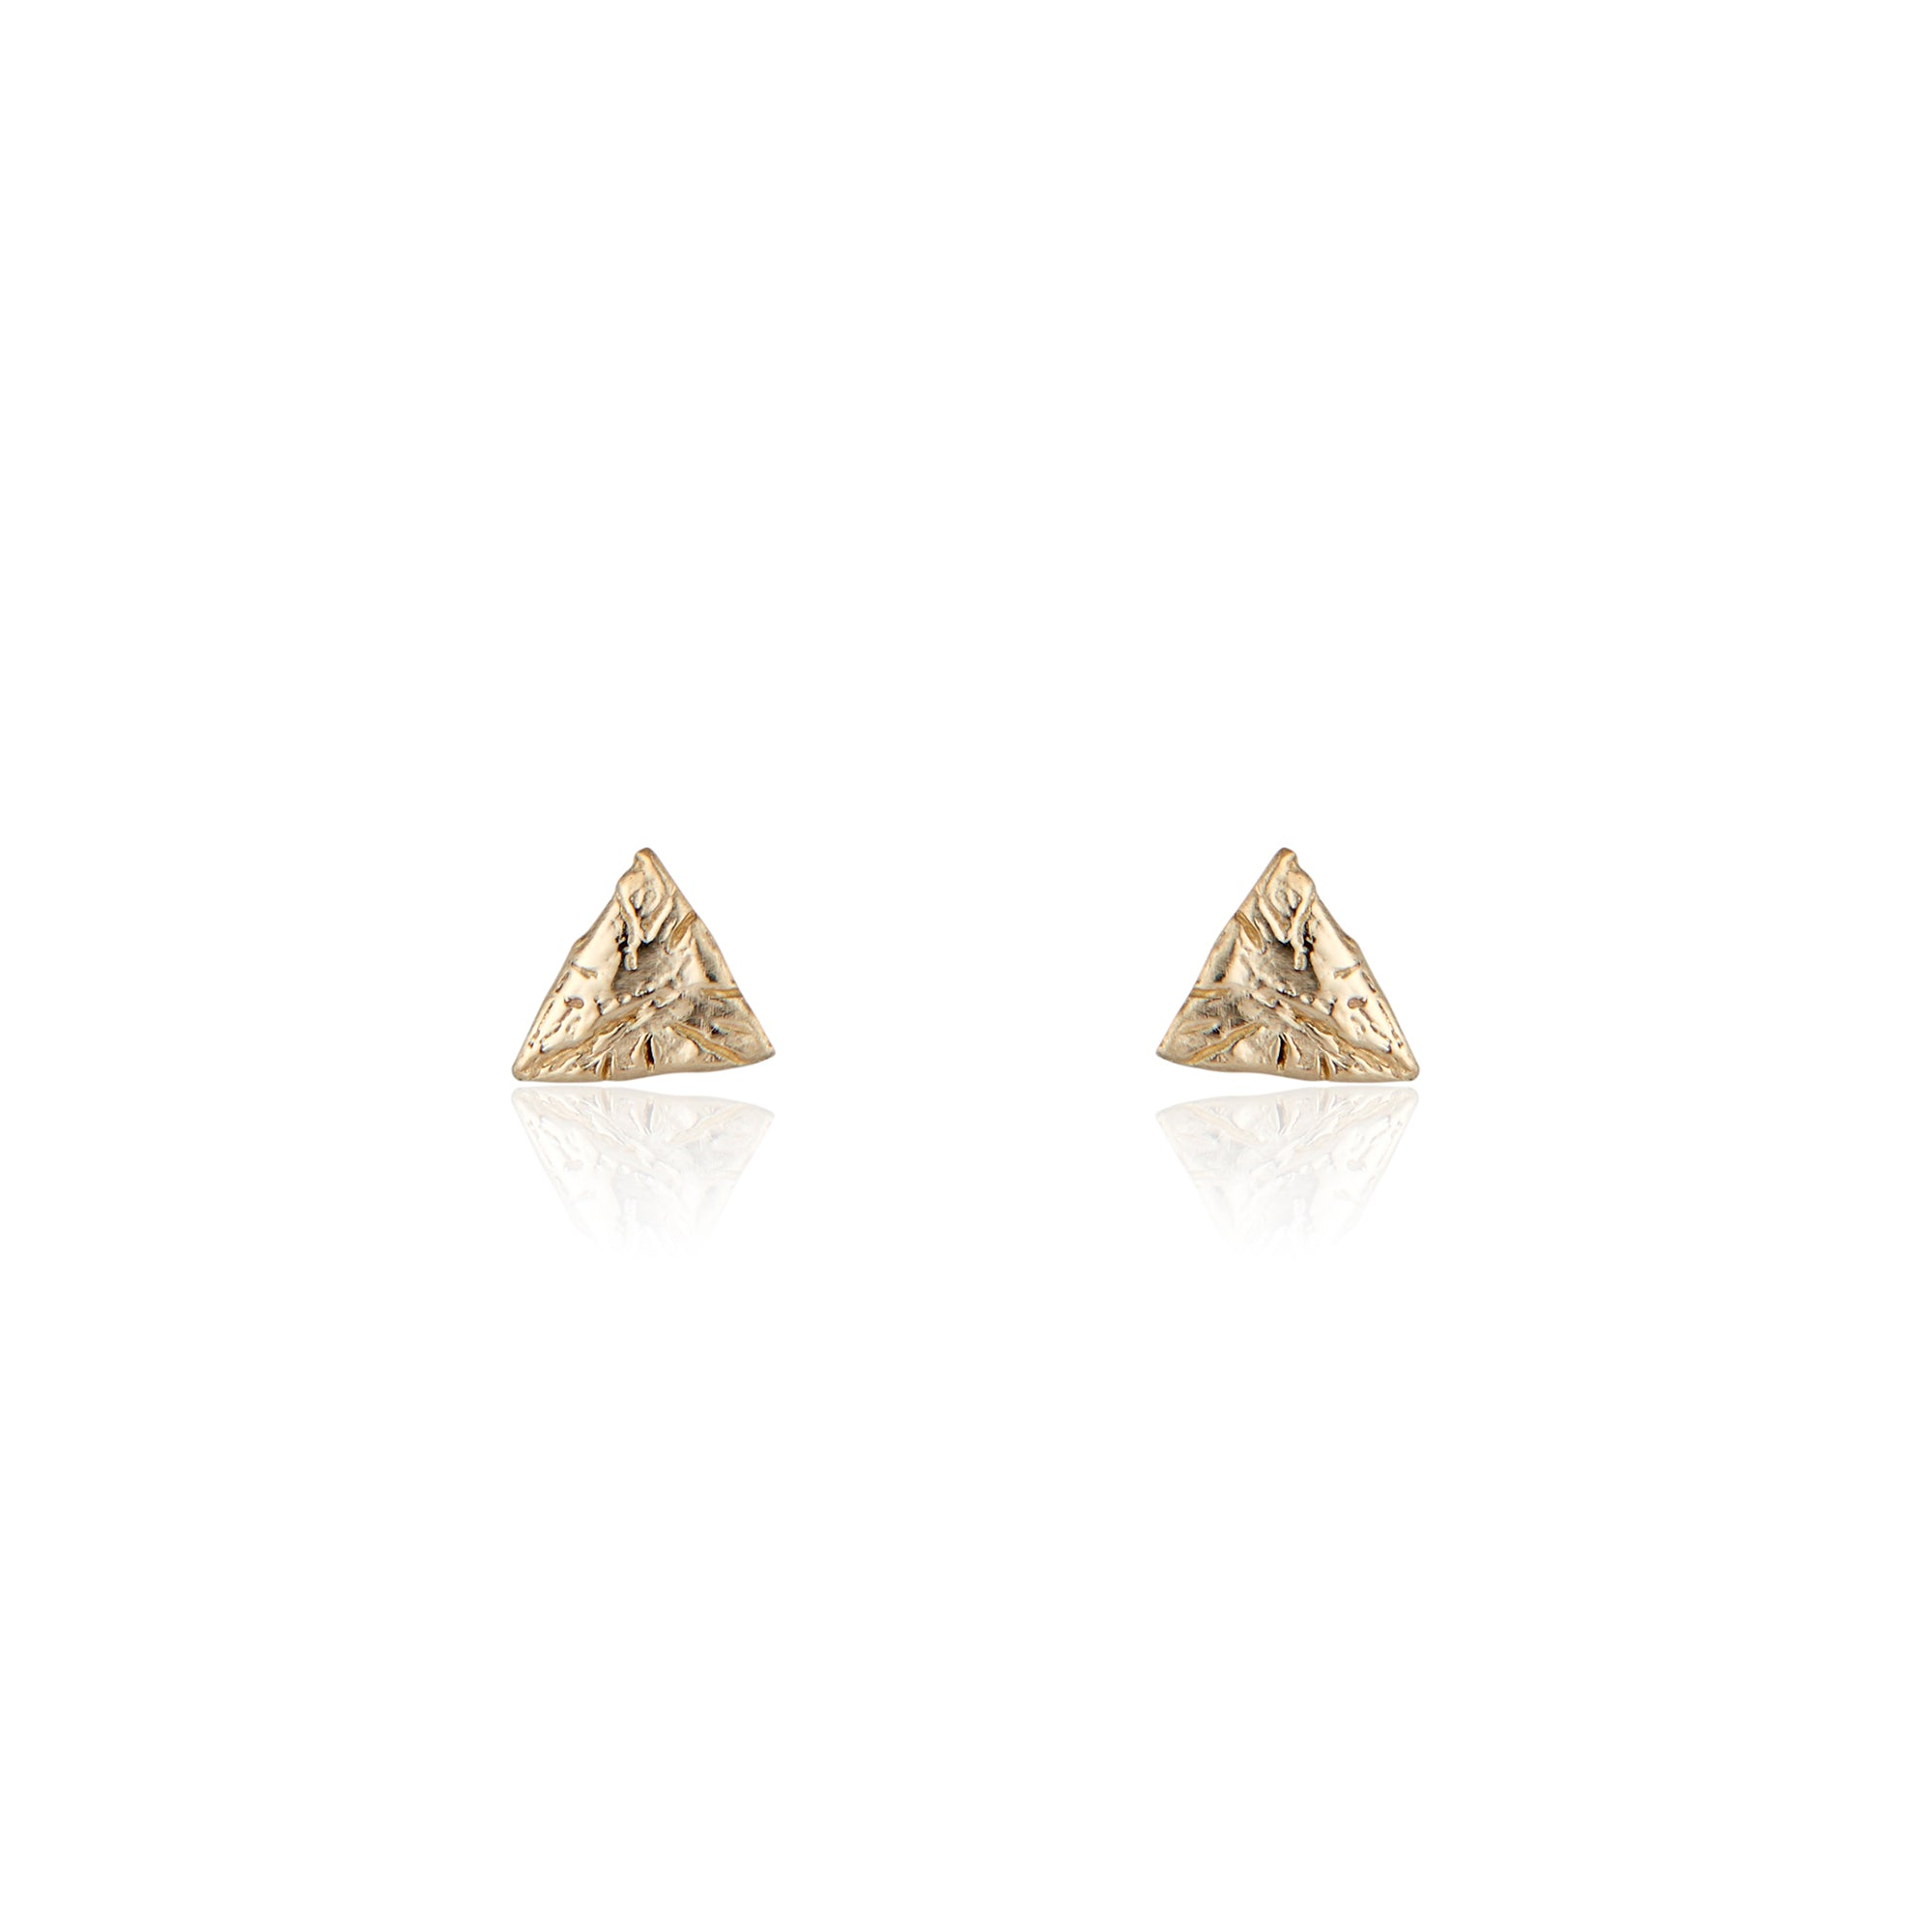 Our Natalie McMillan triangle Joy Studs are an absolute staple. Wear them on their own, or even next to another pair like the Erin or Casandra Hoops!